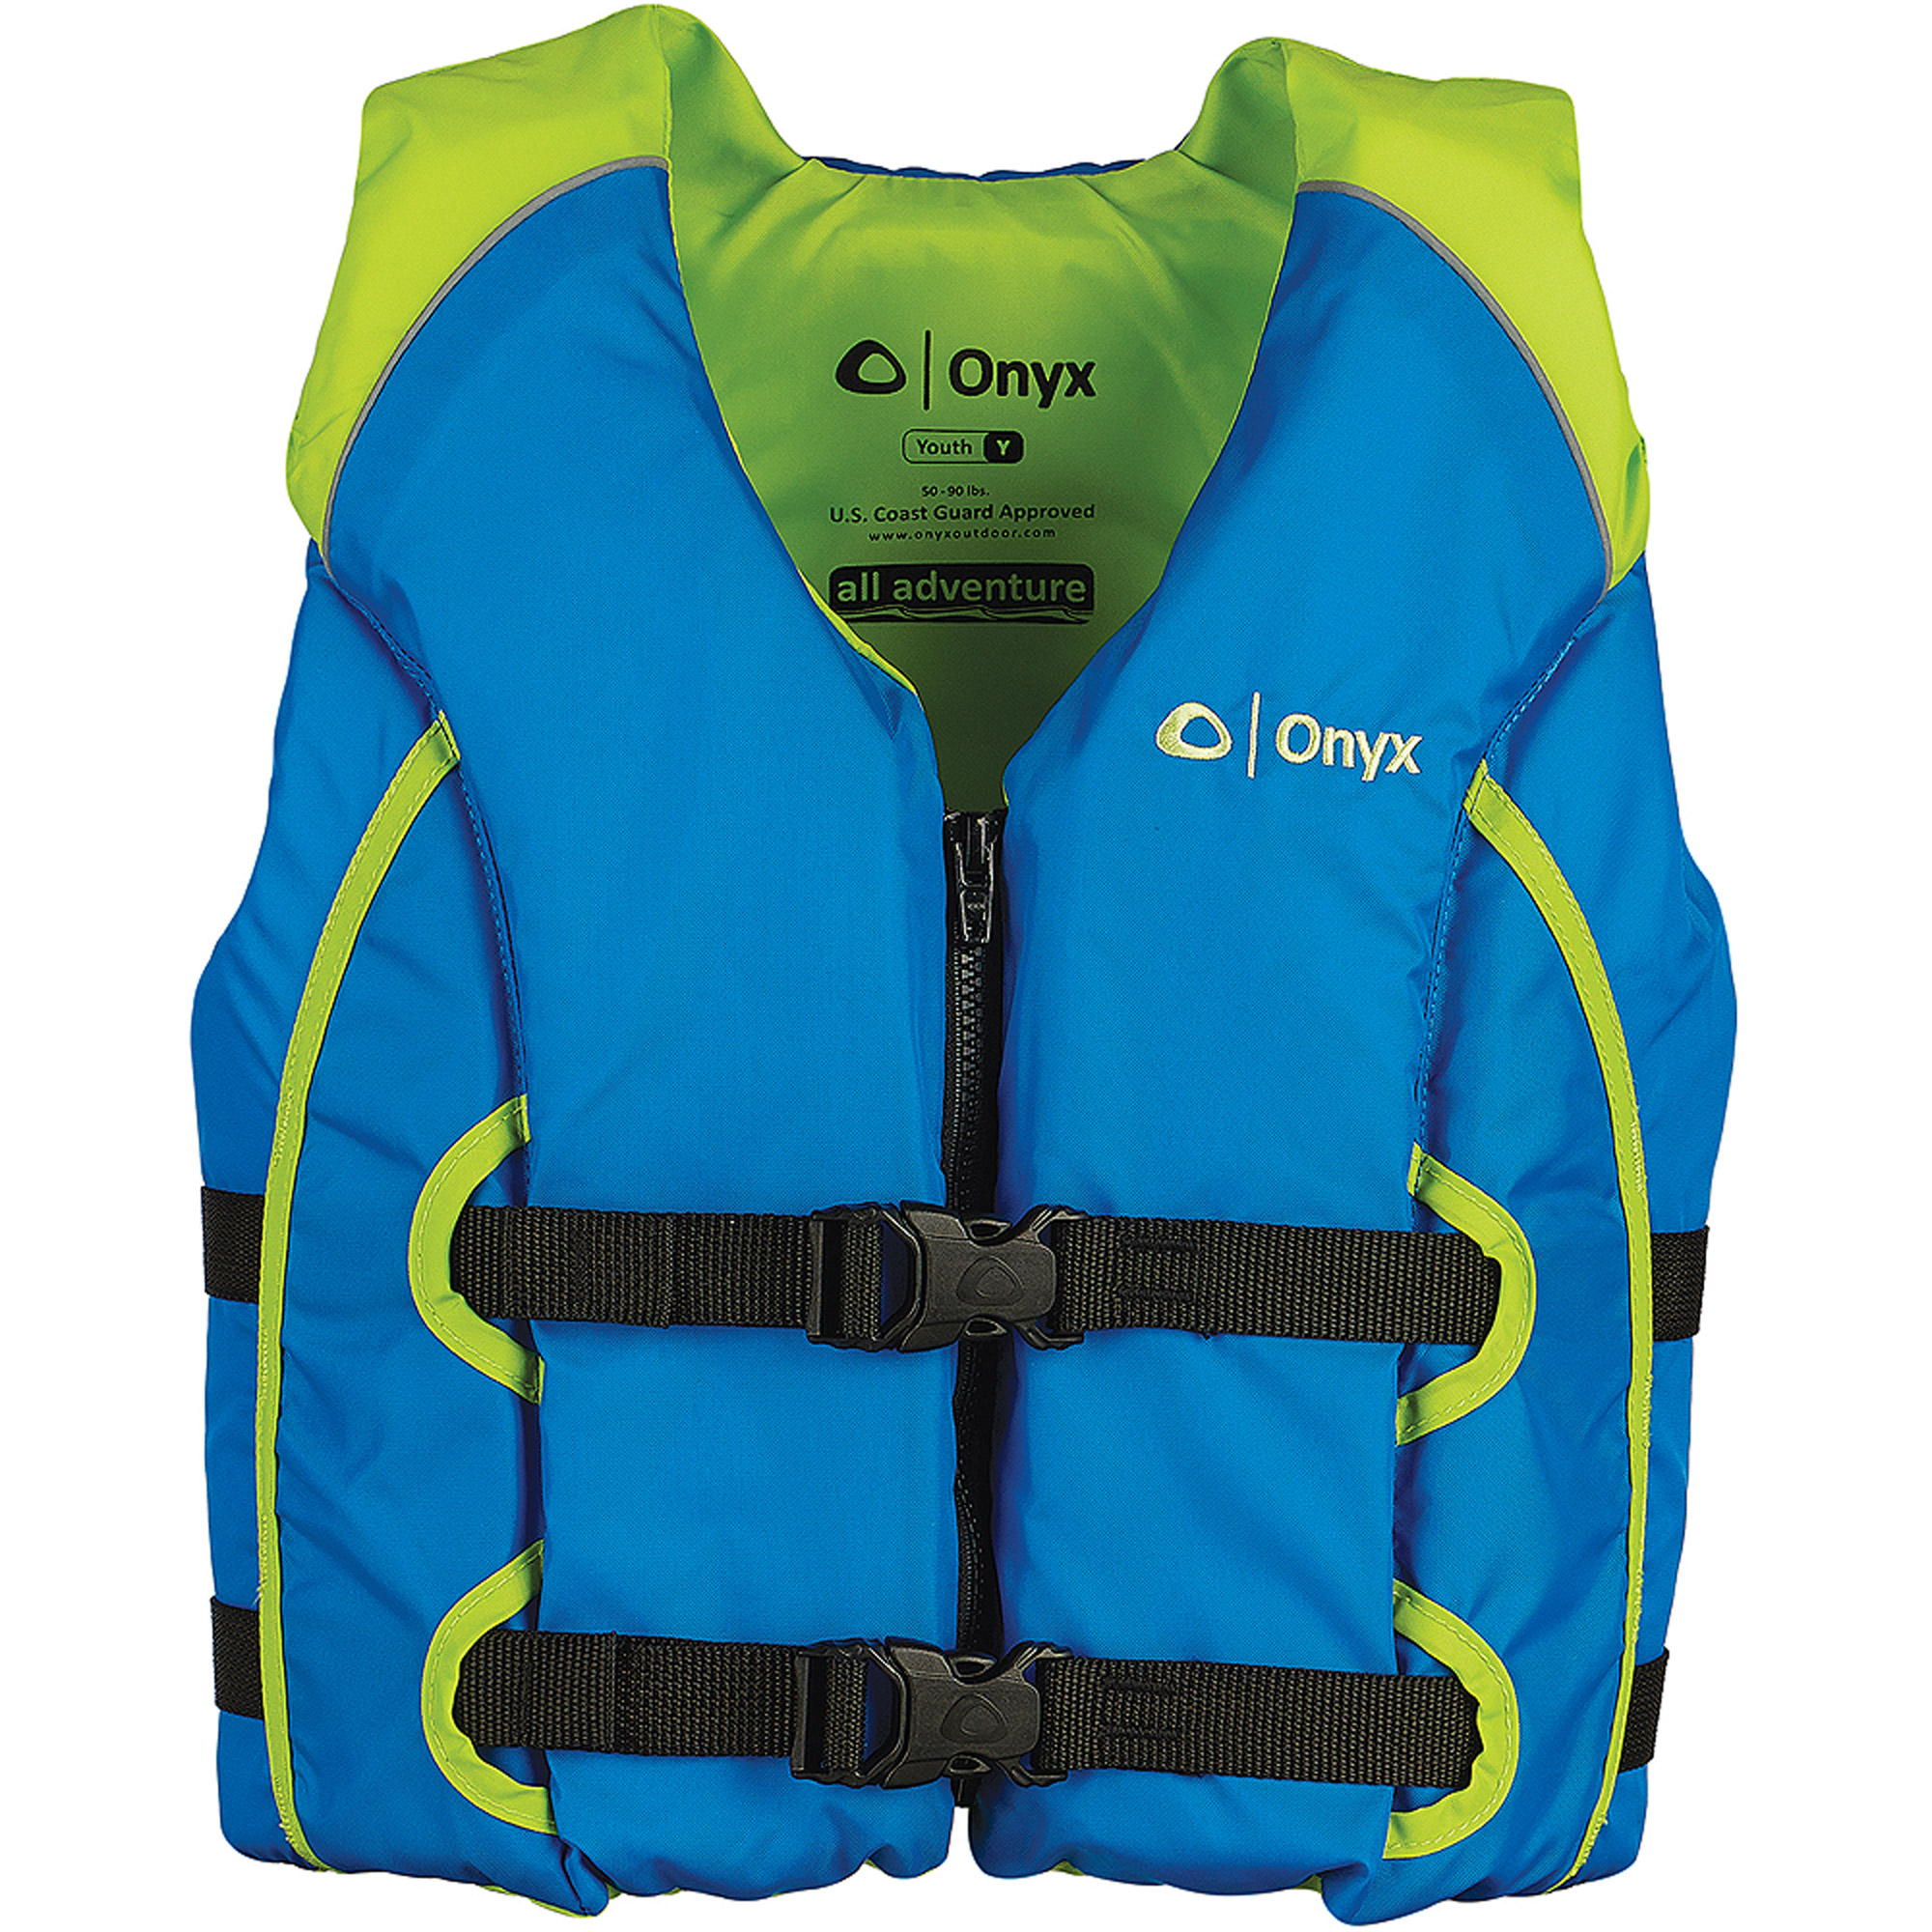 Onyx All Adventure Youth Vest - Green/Blue - Walmart.com